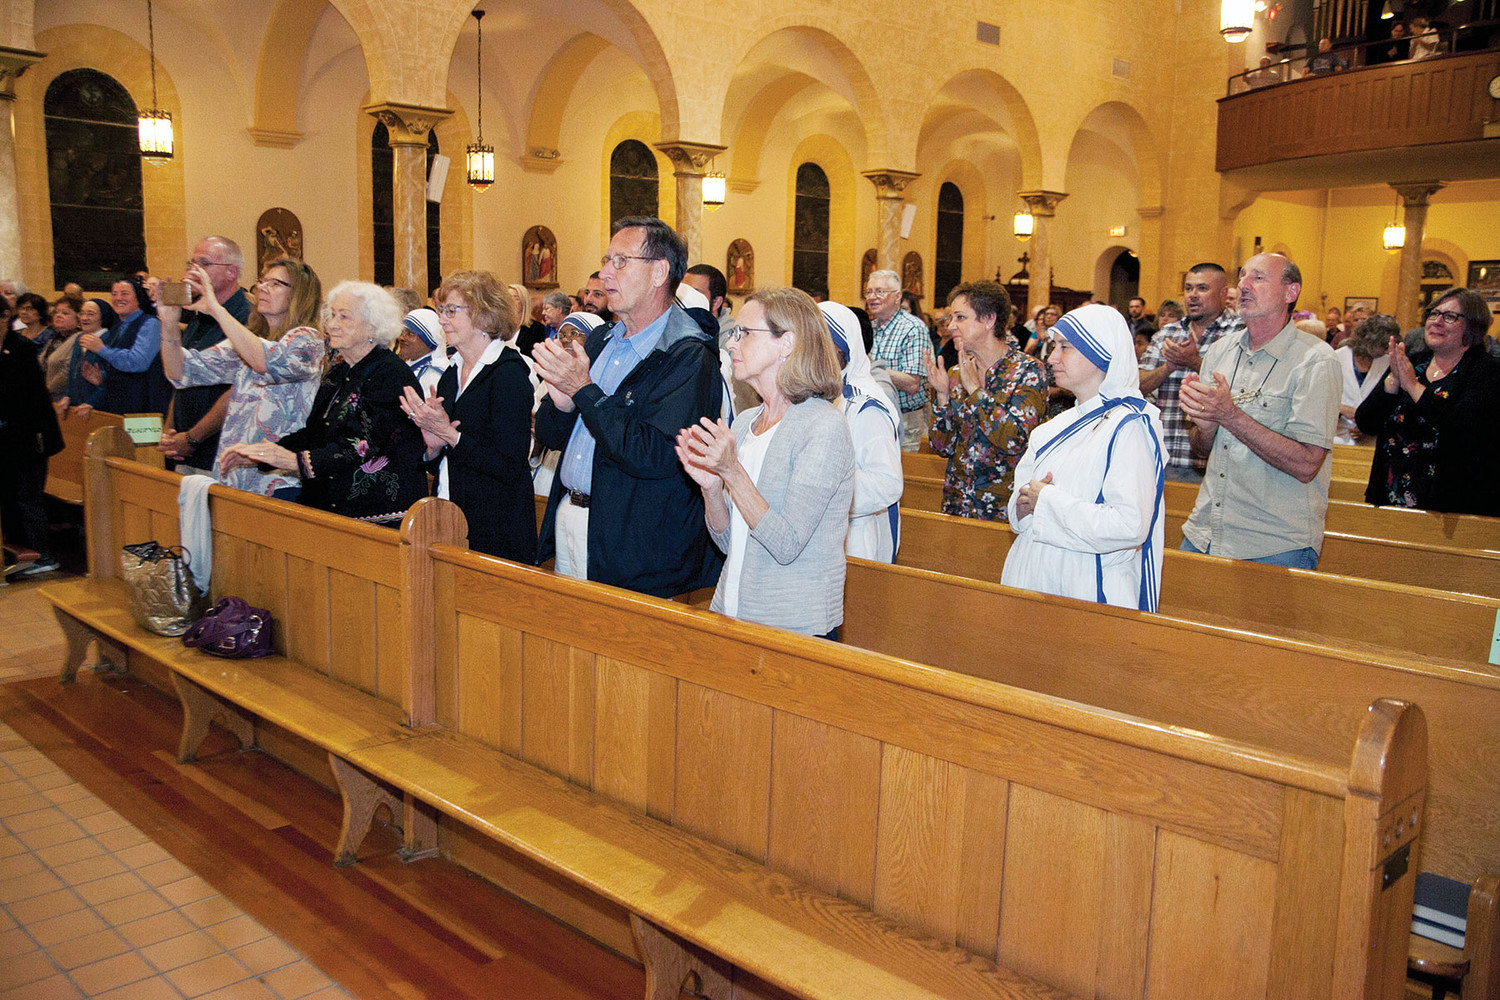 A congregation of 300 attended the Unity Mass Sept. 20.